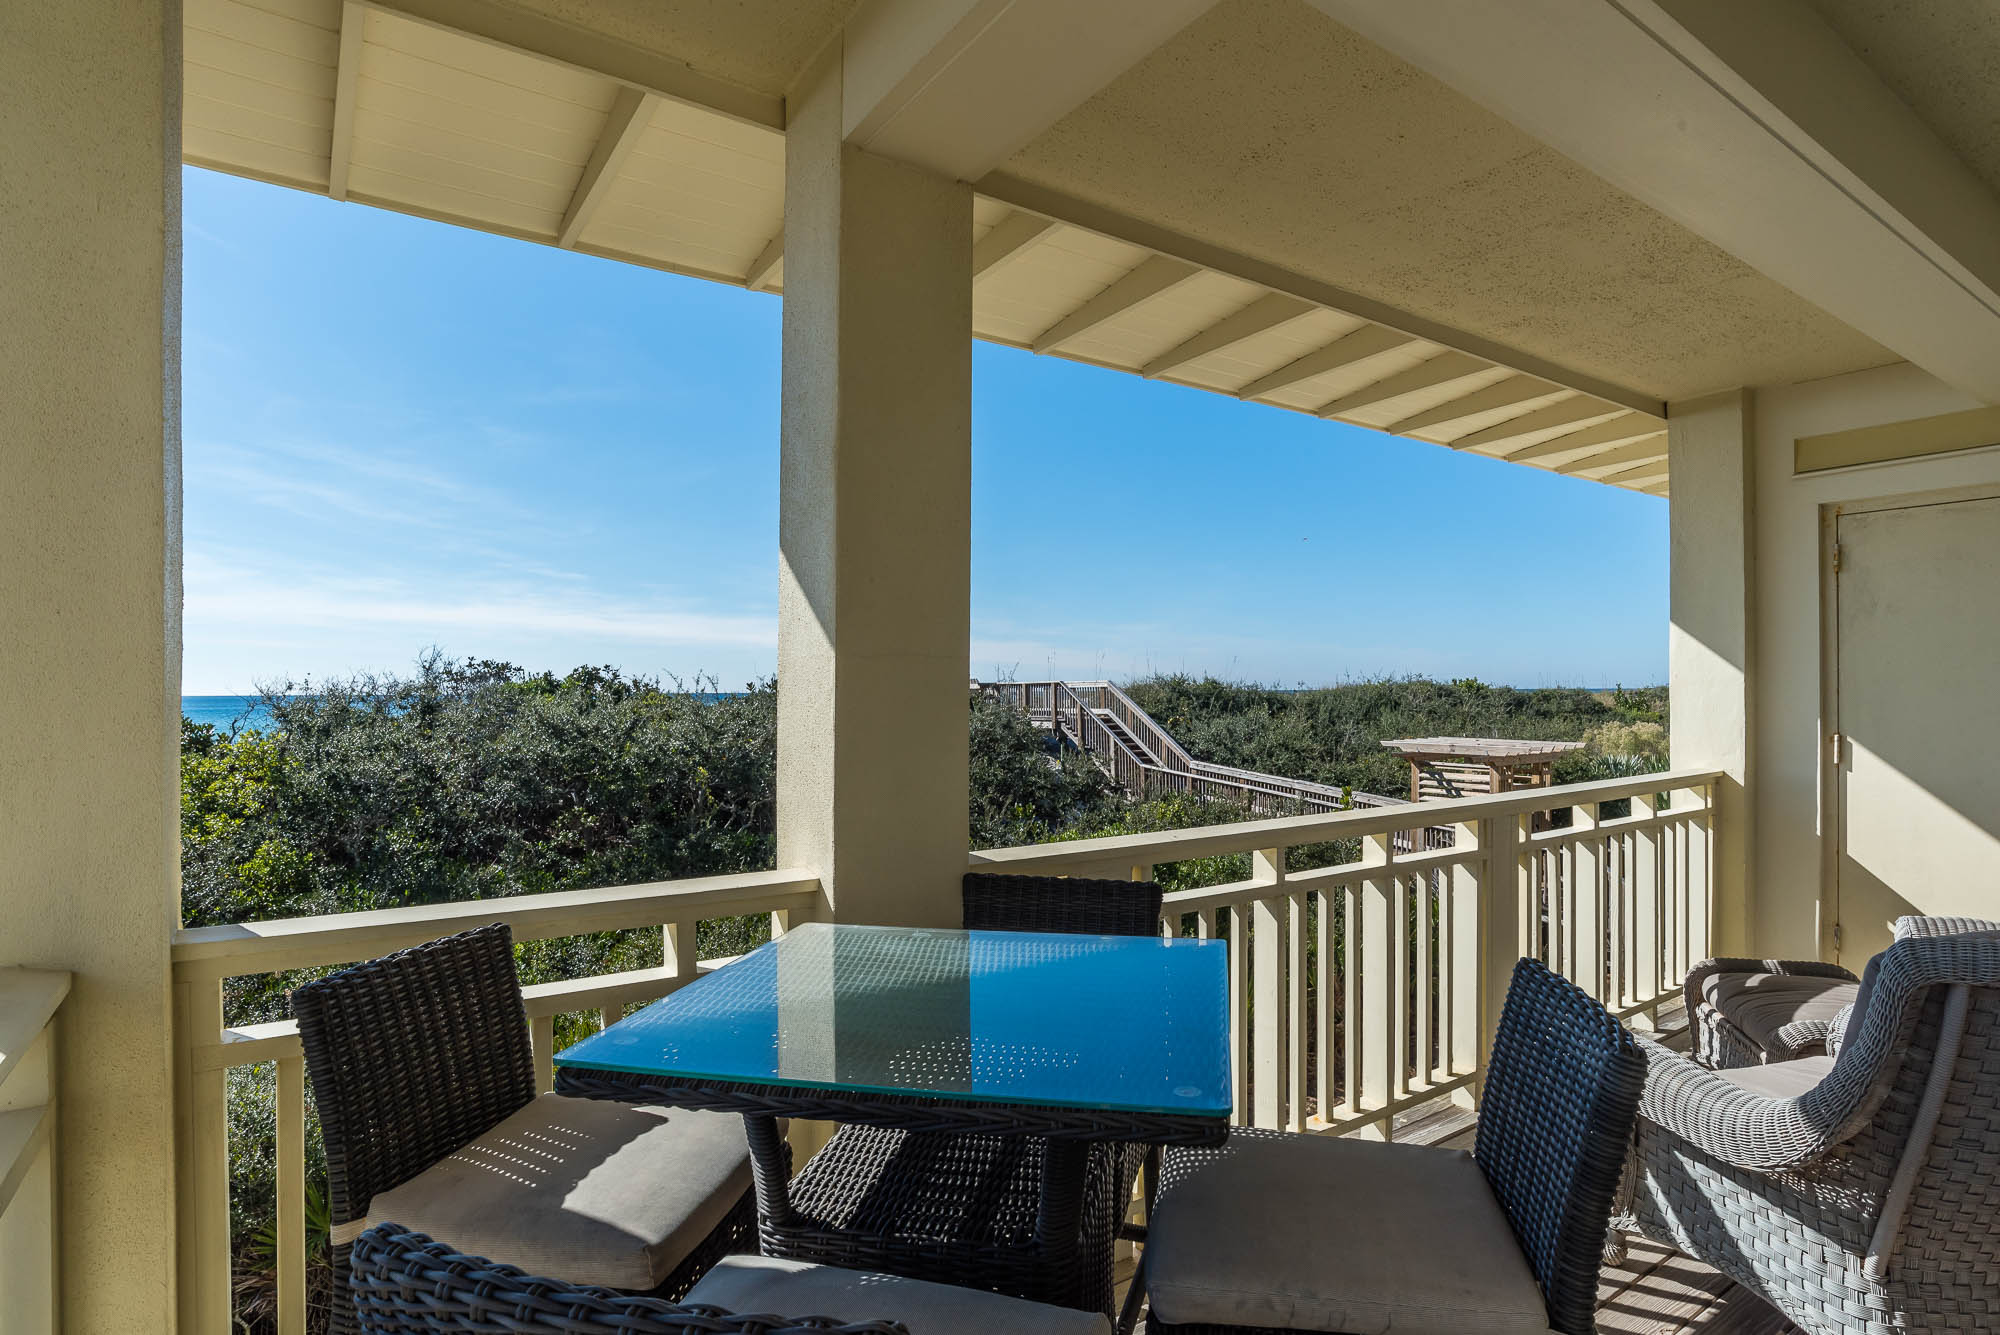 Dine alfresco or relax with a book on the 2nd floor balcony